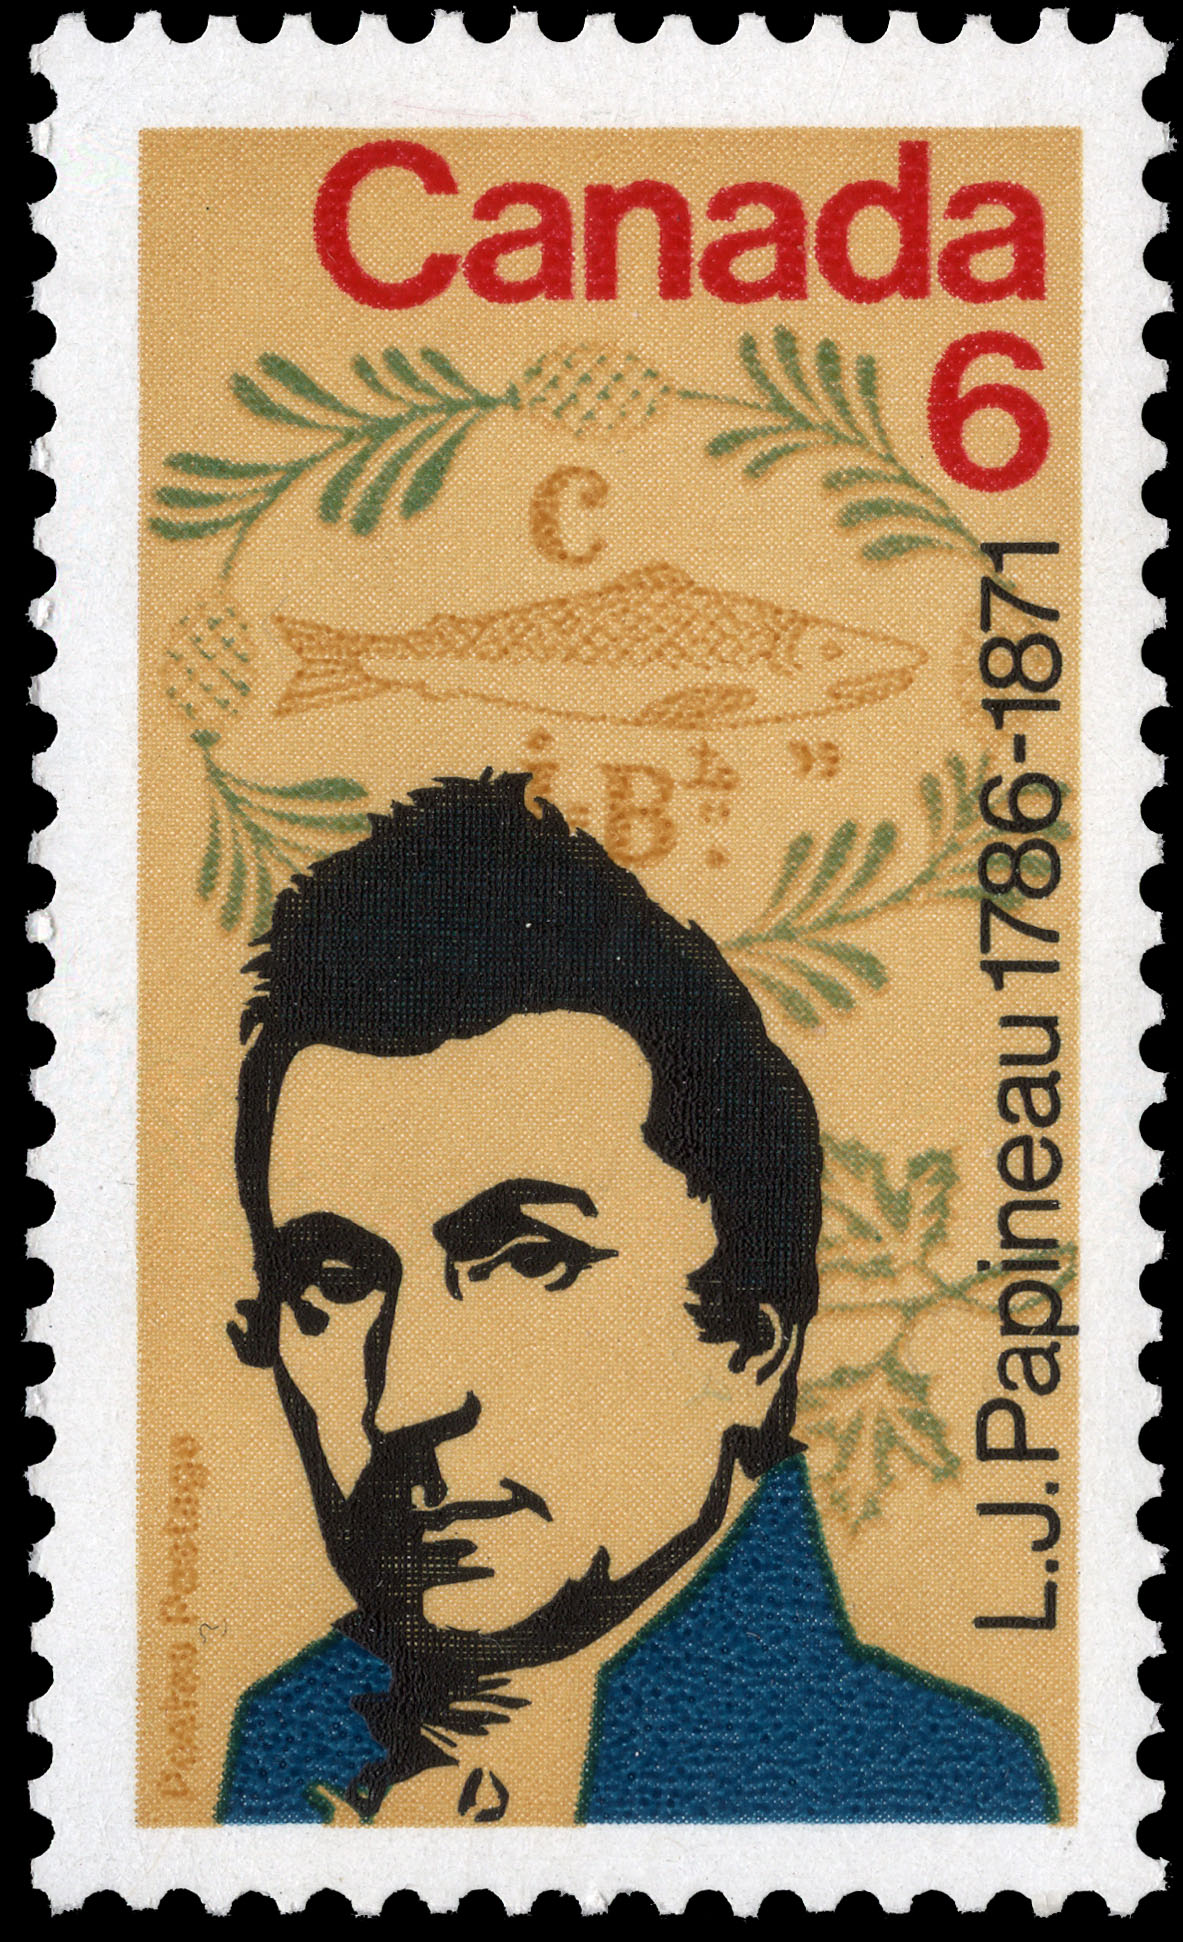 L.J. Papineau, 1786-1871 Canada Postage Stamp